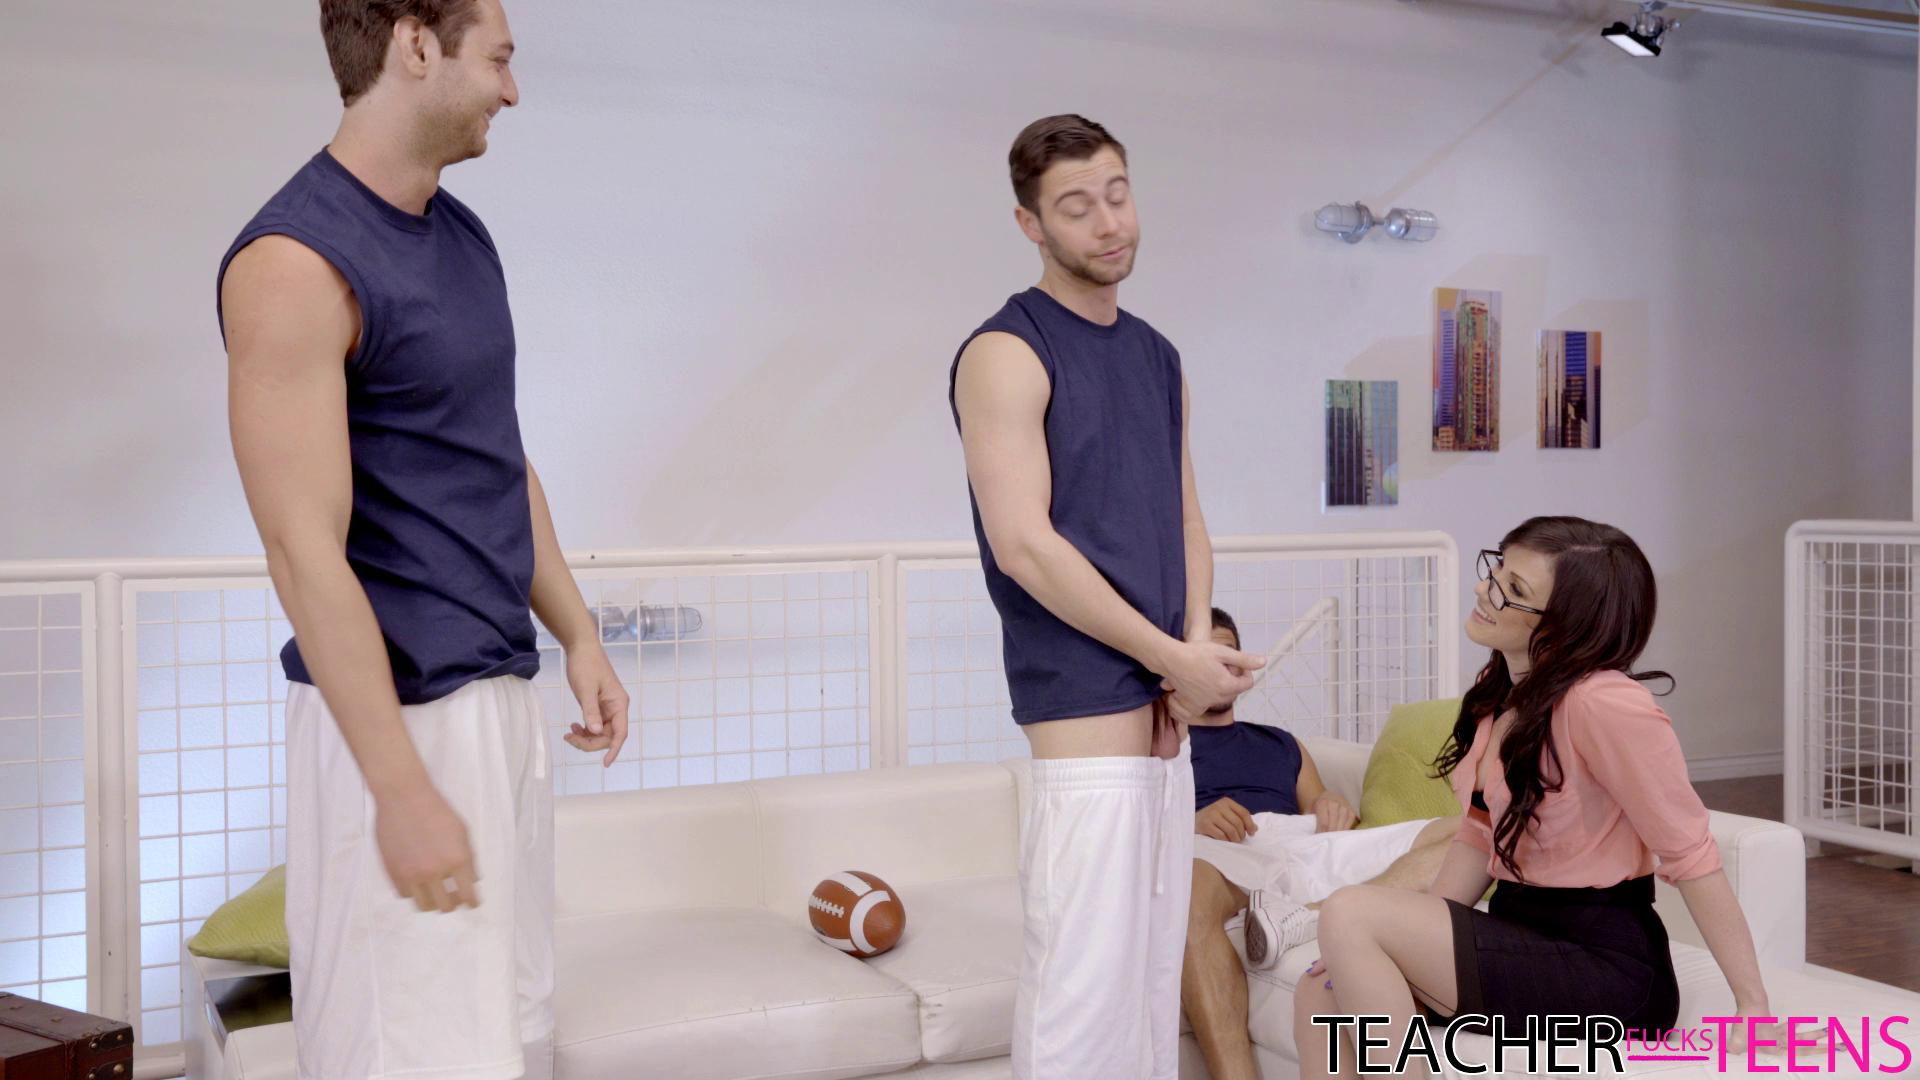 TeacherFucksTeens – Jennifer White The Whole Team